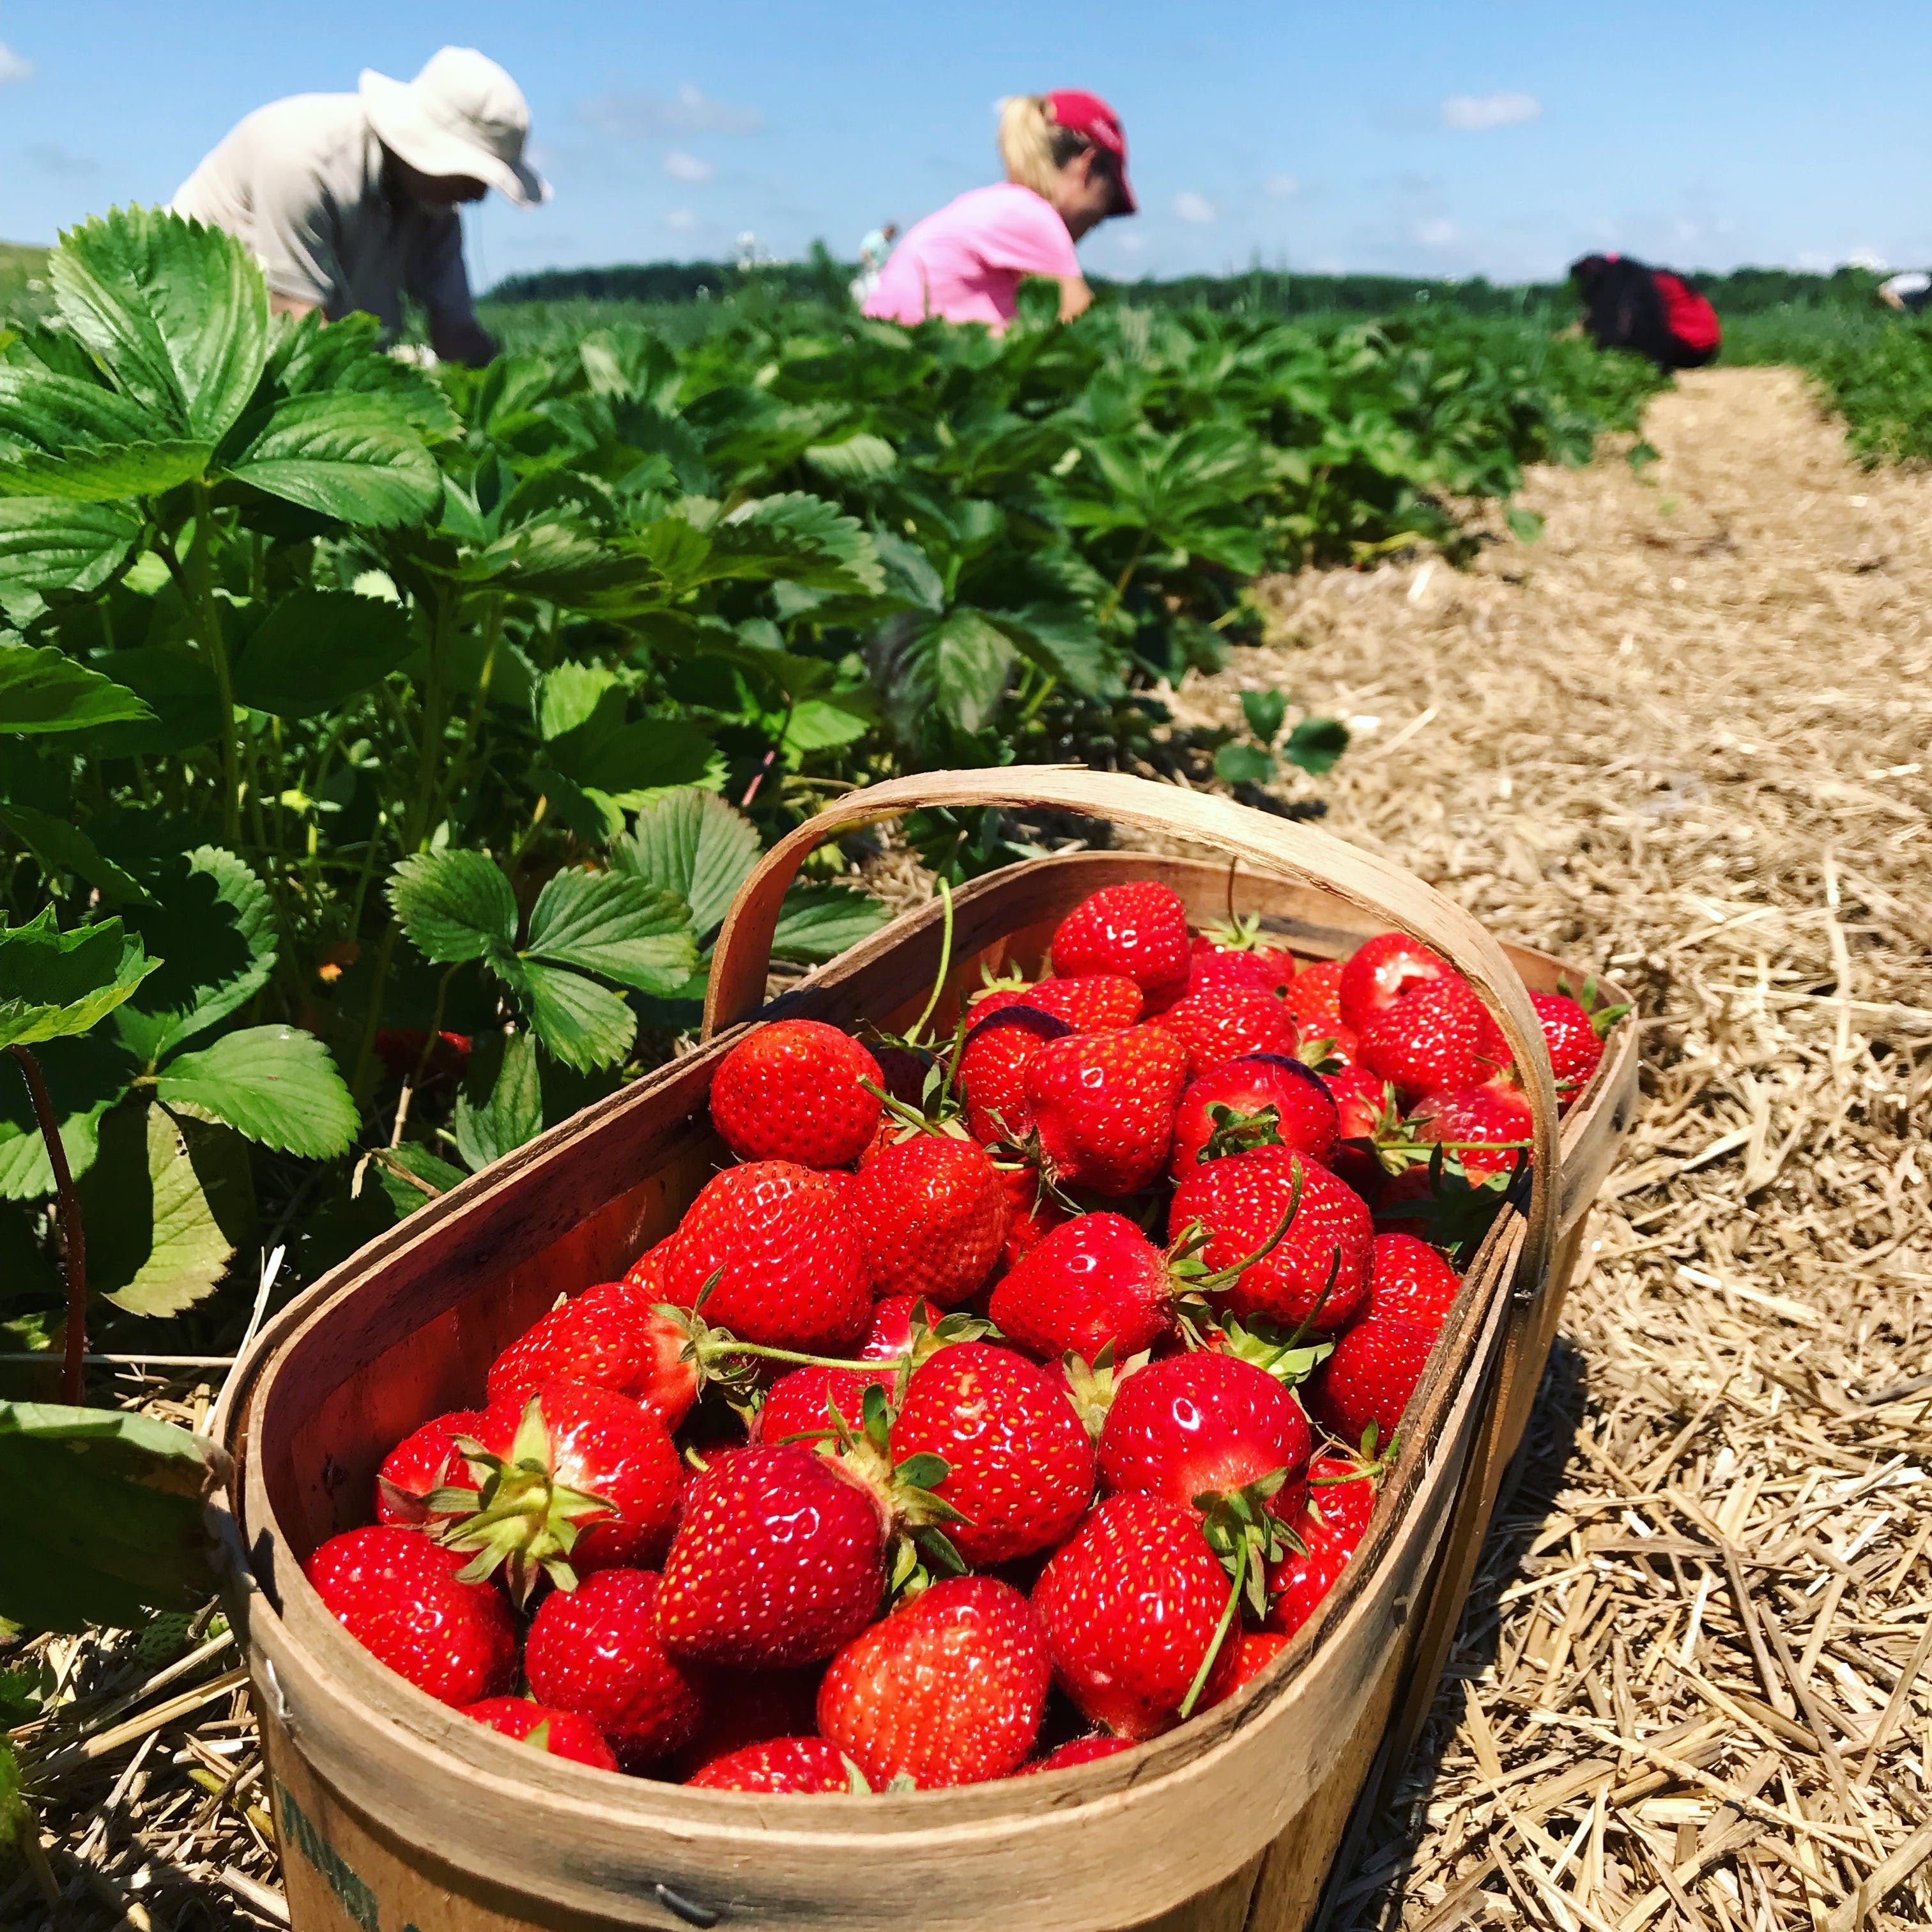 Free stock photo of Strawberrypicking